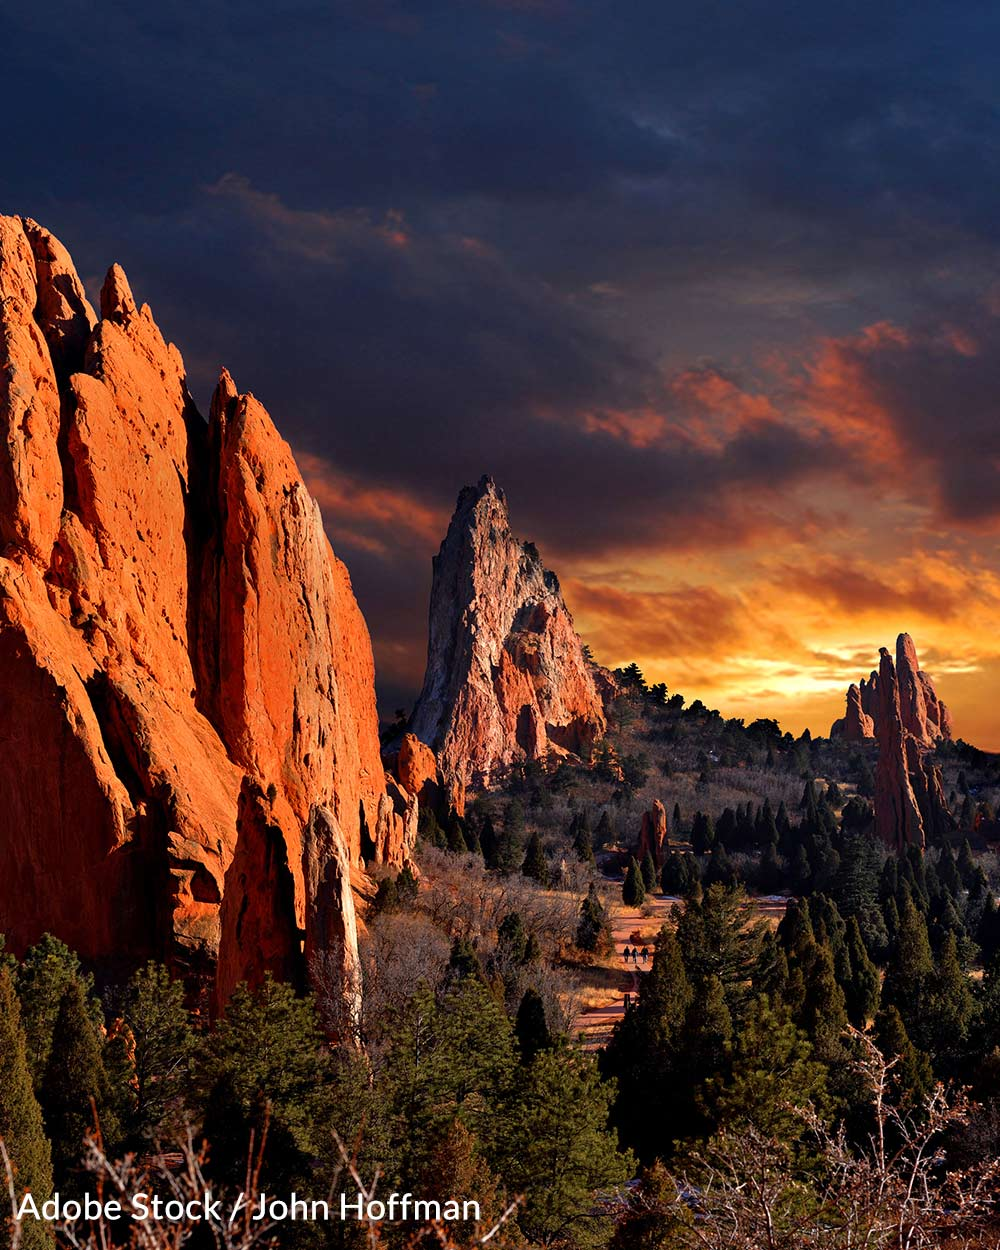 The red rocks landscape in Utah has remained untouched by human development for millions of years.